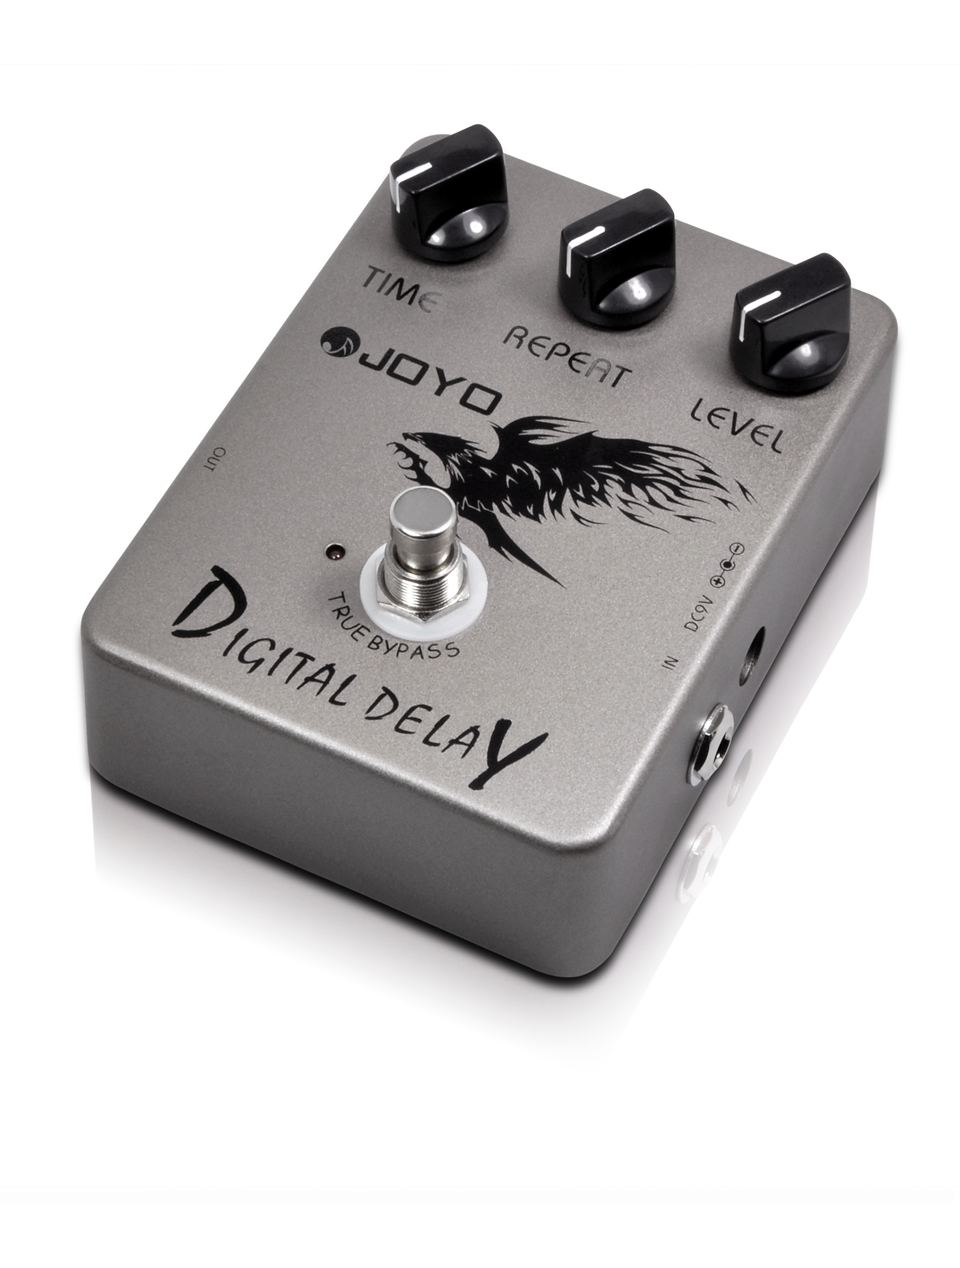 JOYO Digital Delay Guitar Effect Pedal Time Delay Repeat Level Adjustment Close To Analog Delay 25ms-200ms Delay Range joyo ironman digital guitar effects pedal delay guitarra stompbox copy analog modulation filtered delay models truebypass